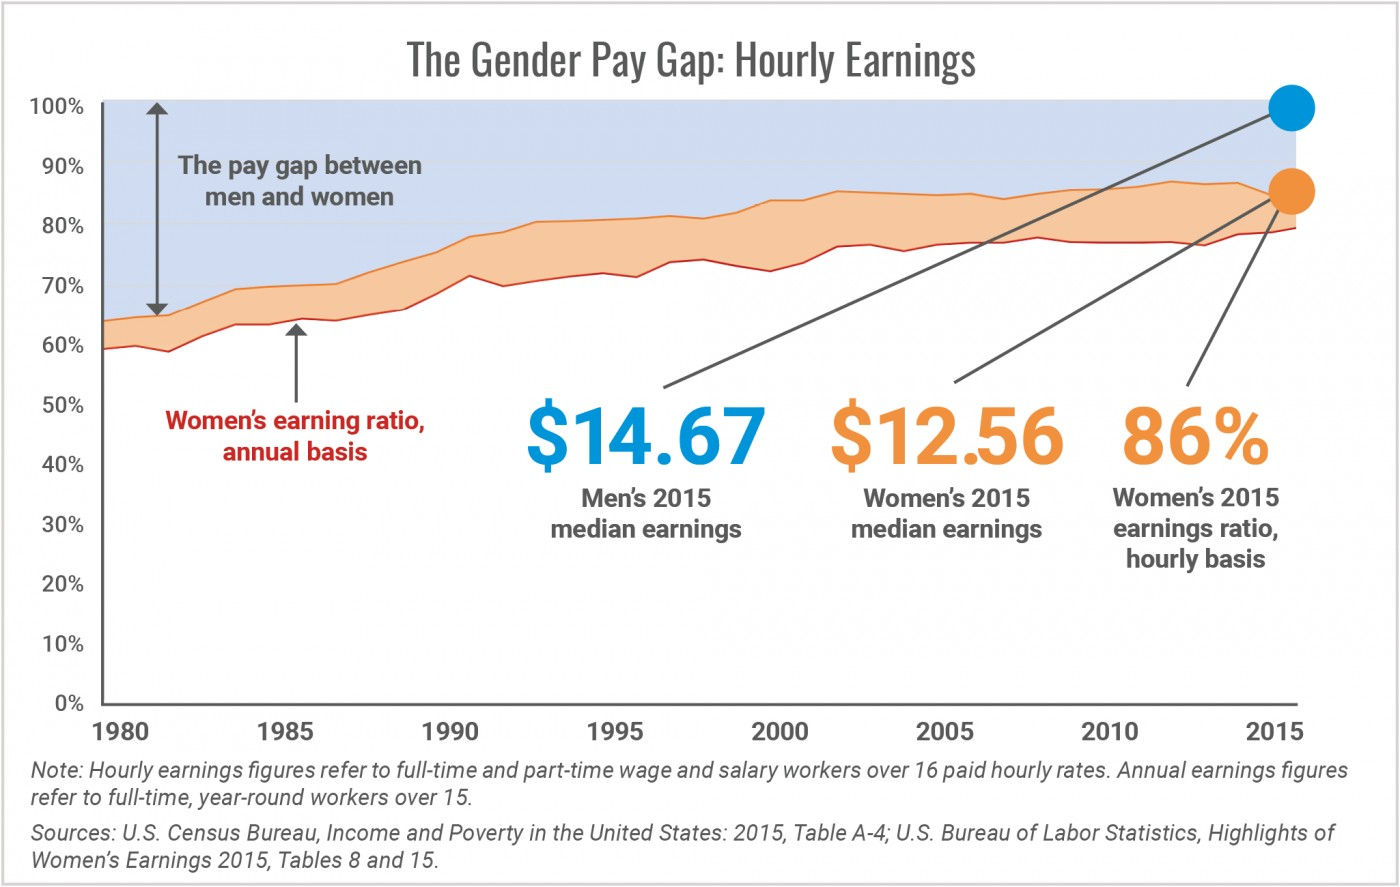 010 Research Paper Pay Gap The Gender Hourly Earnings1505304633 Top Wage Outline In India 1400